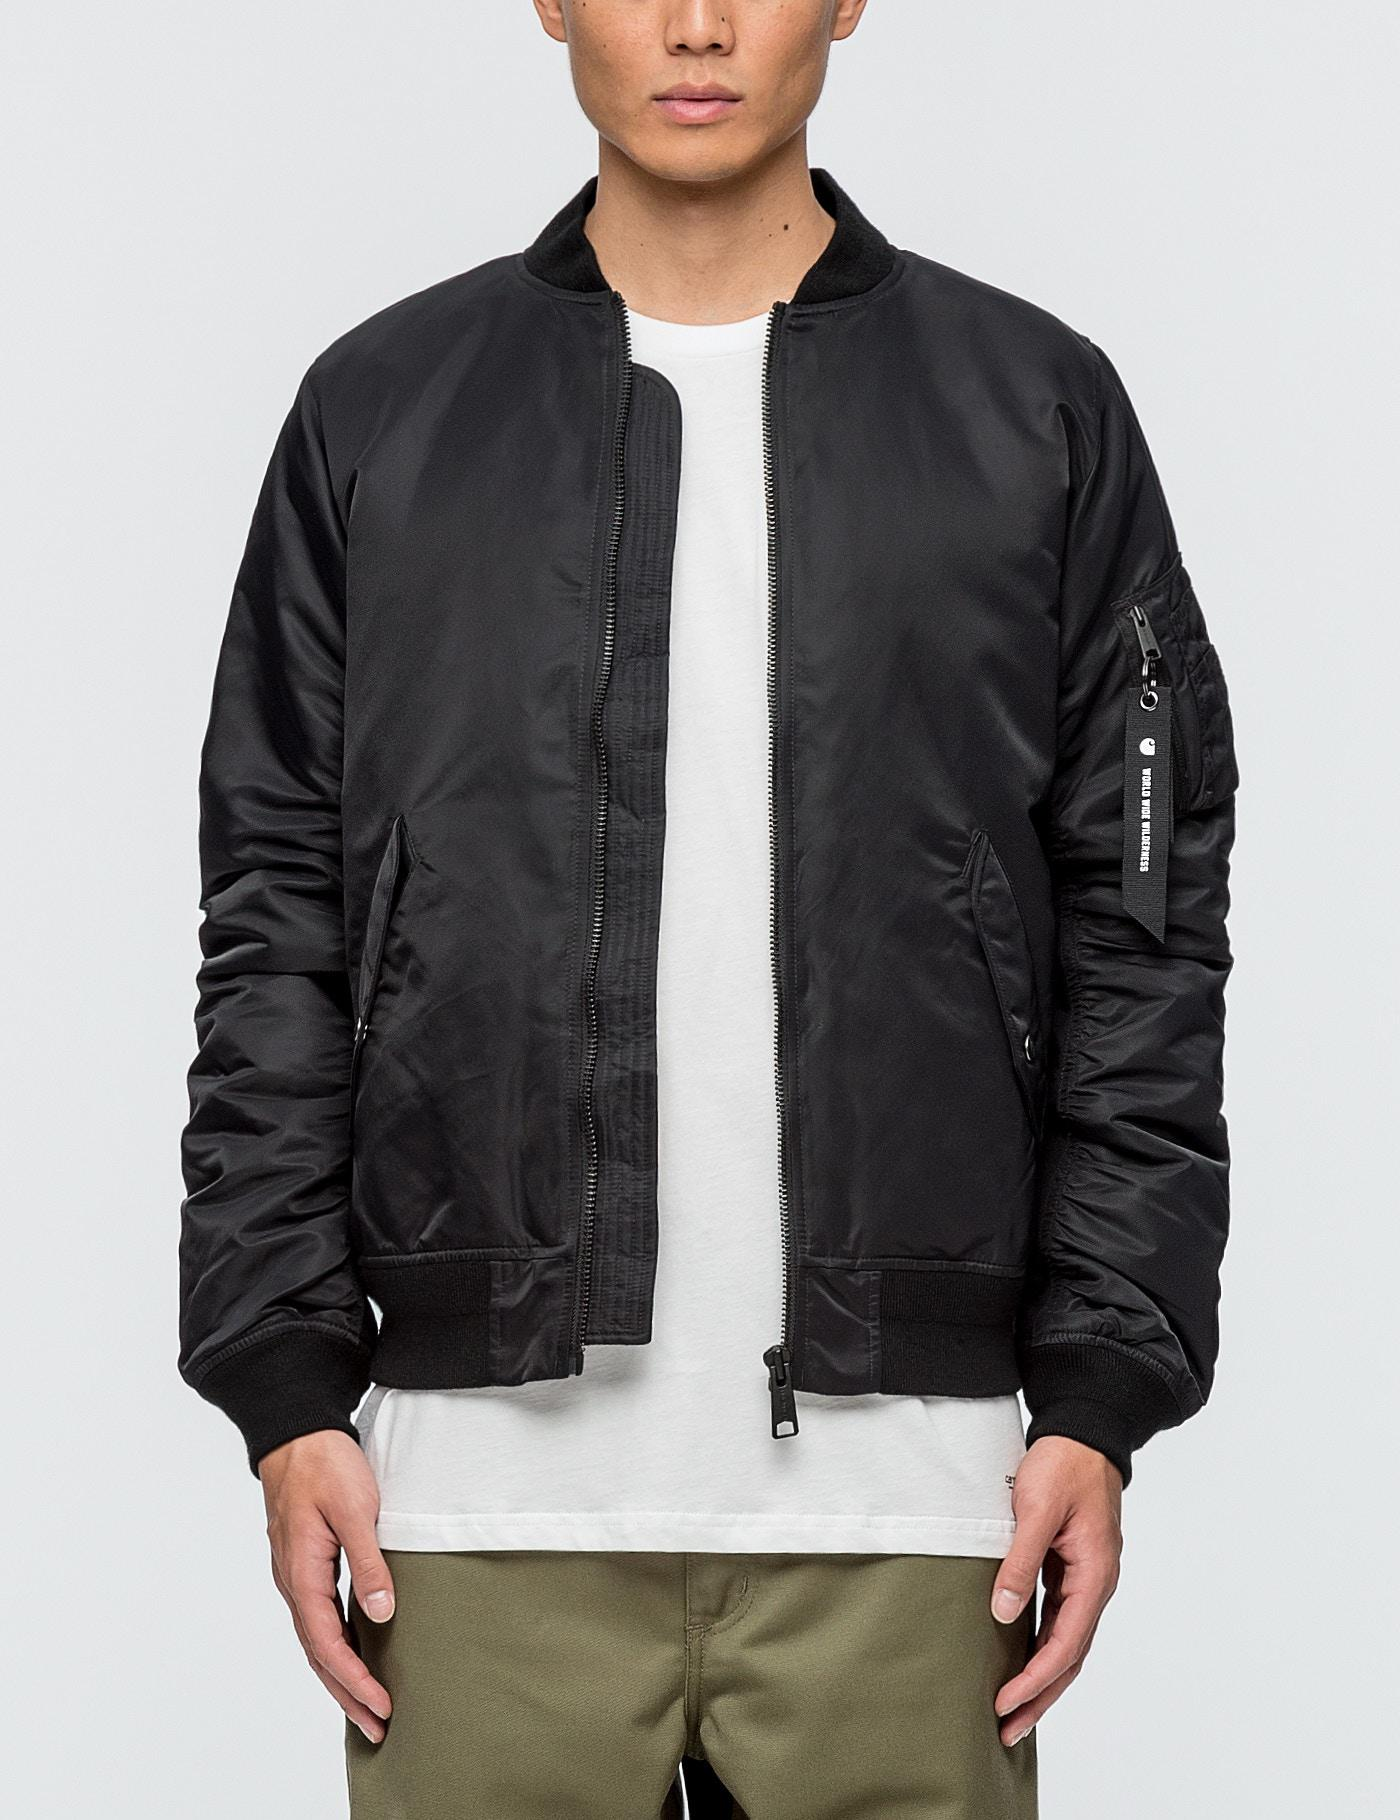 Lyst - Carhartt WIP Ashton Bomber Jacket in Black for Men 7f3a1d7bfd2